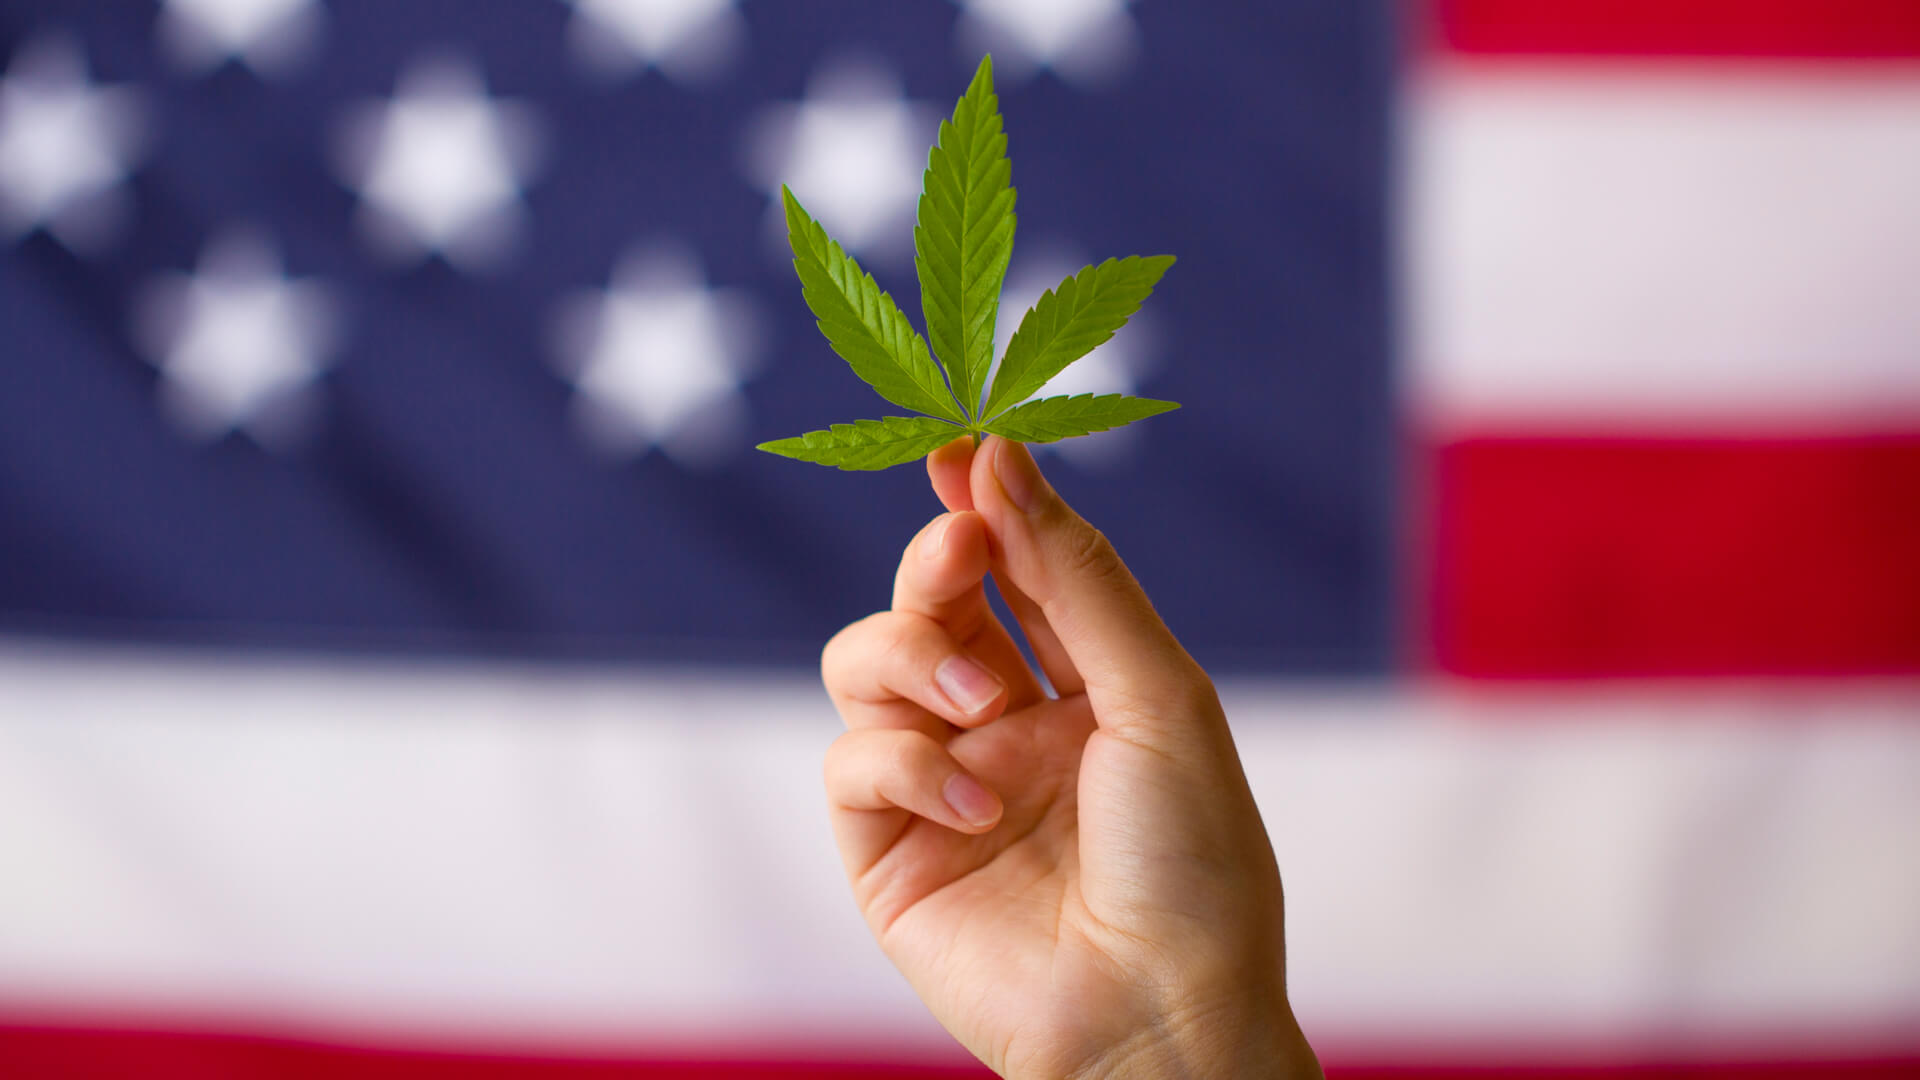 a hand holding up a marijuana leaf with the American flag in the background